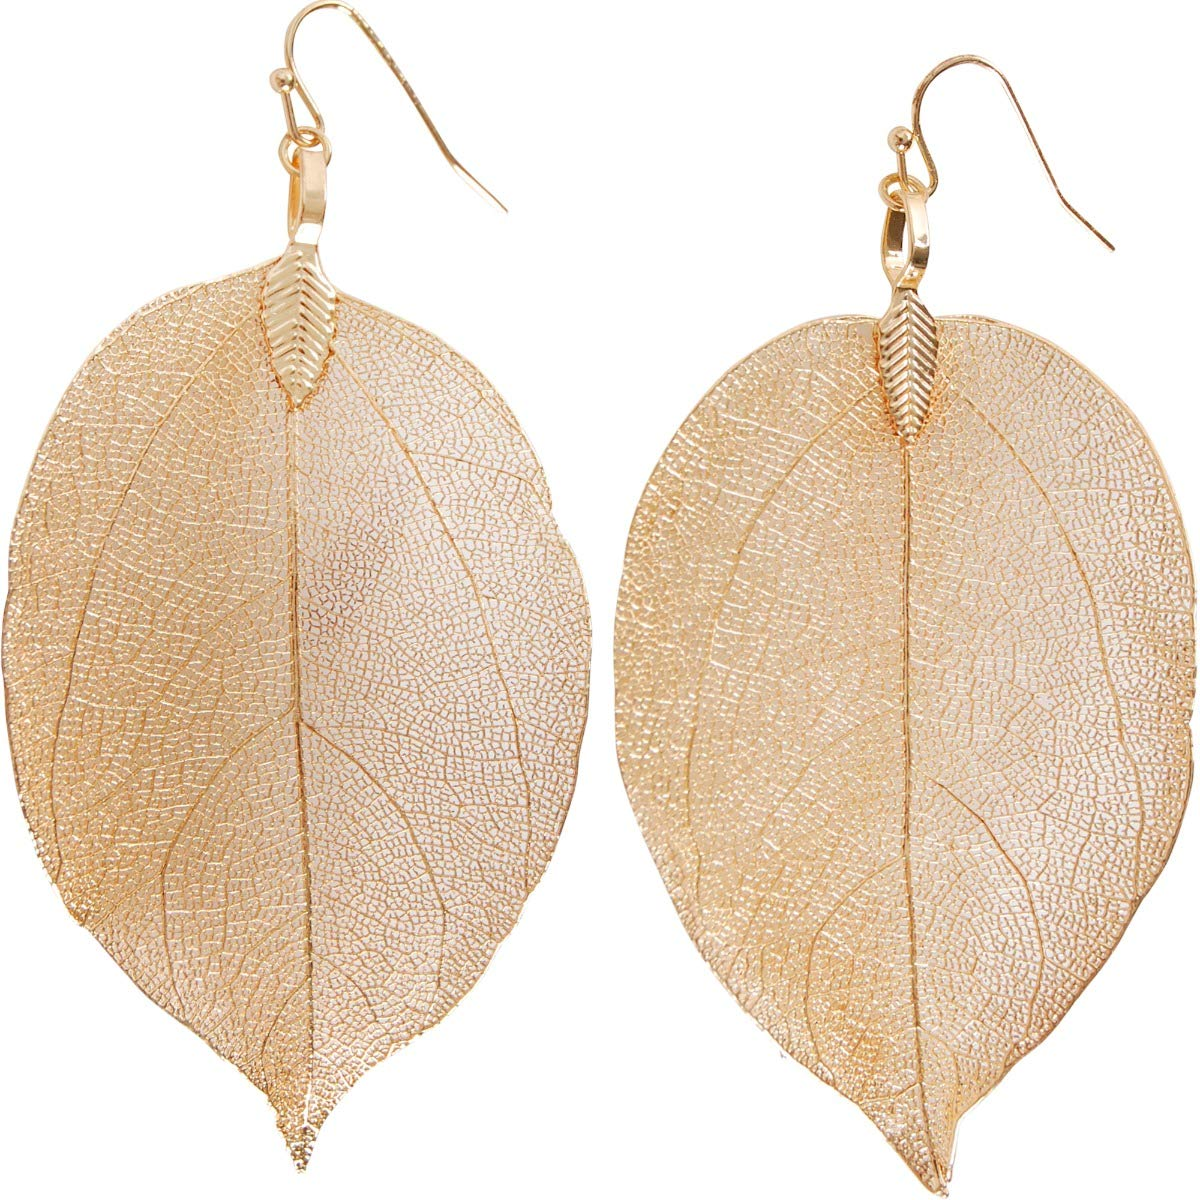 Humble Chic Natural Leaf Earrings - Lightweight Plated Filigree Long Tear-Drop Dangle Earrings for Women, Made from Individually Unique Real Leaves